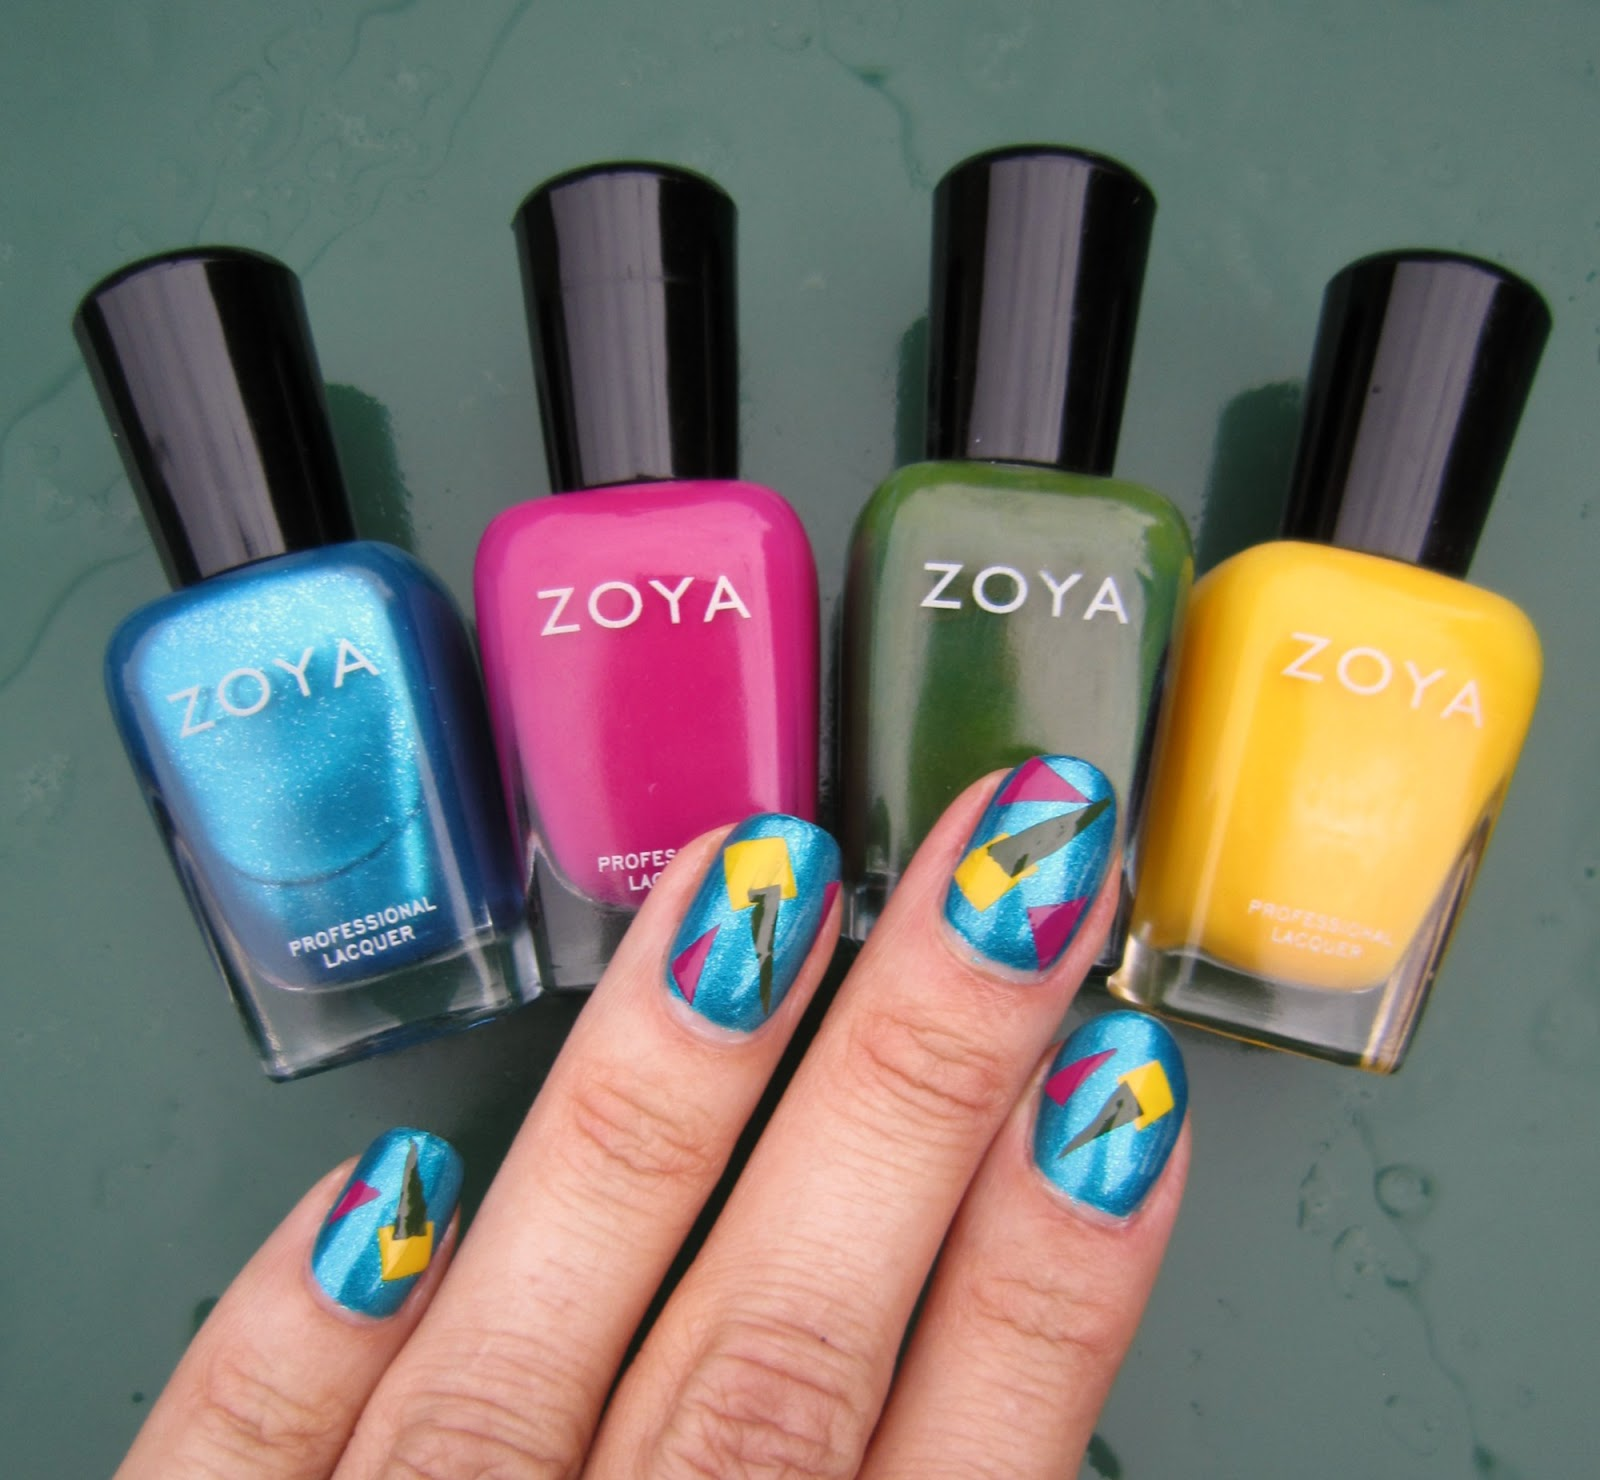 Concrete and Nail Polish: DIY Nail Decals With Zoya